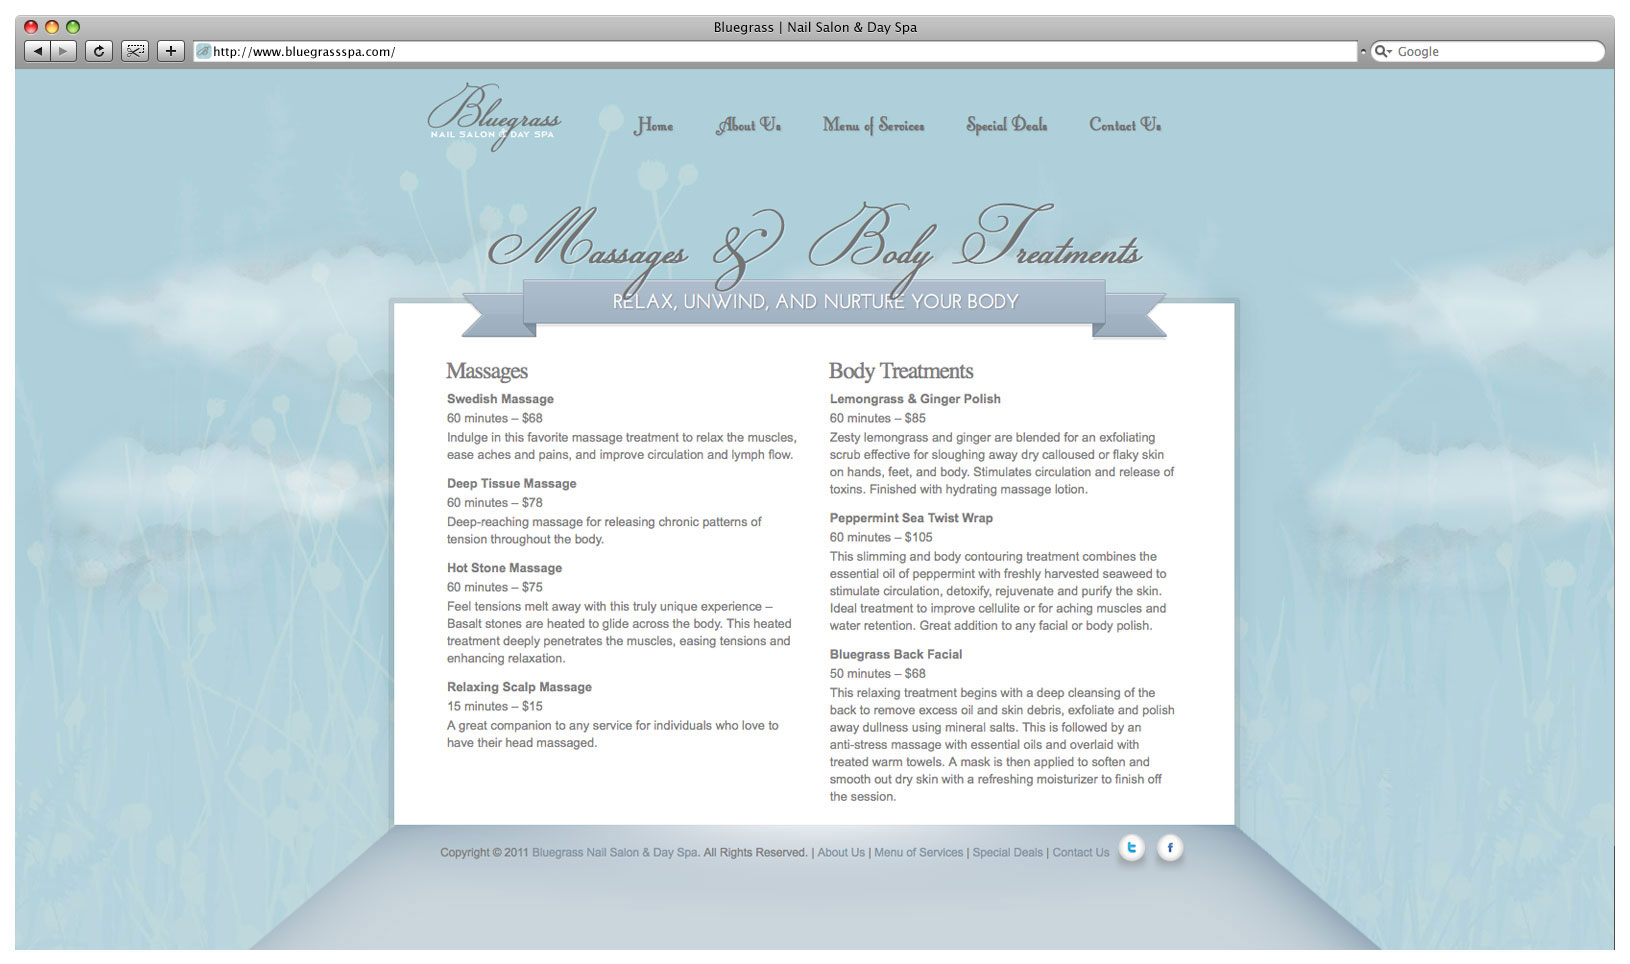 Bluegrass Day Spa & Nail Salon Website - Massages & Body Treatments